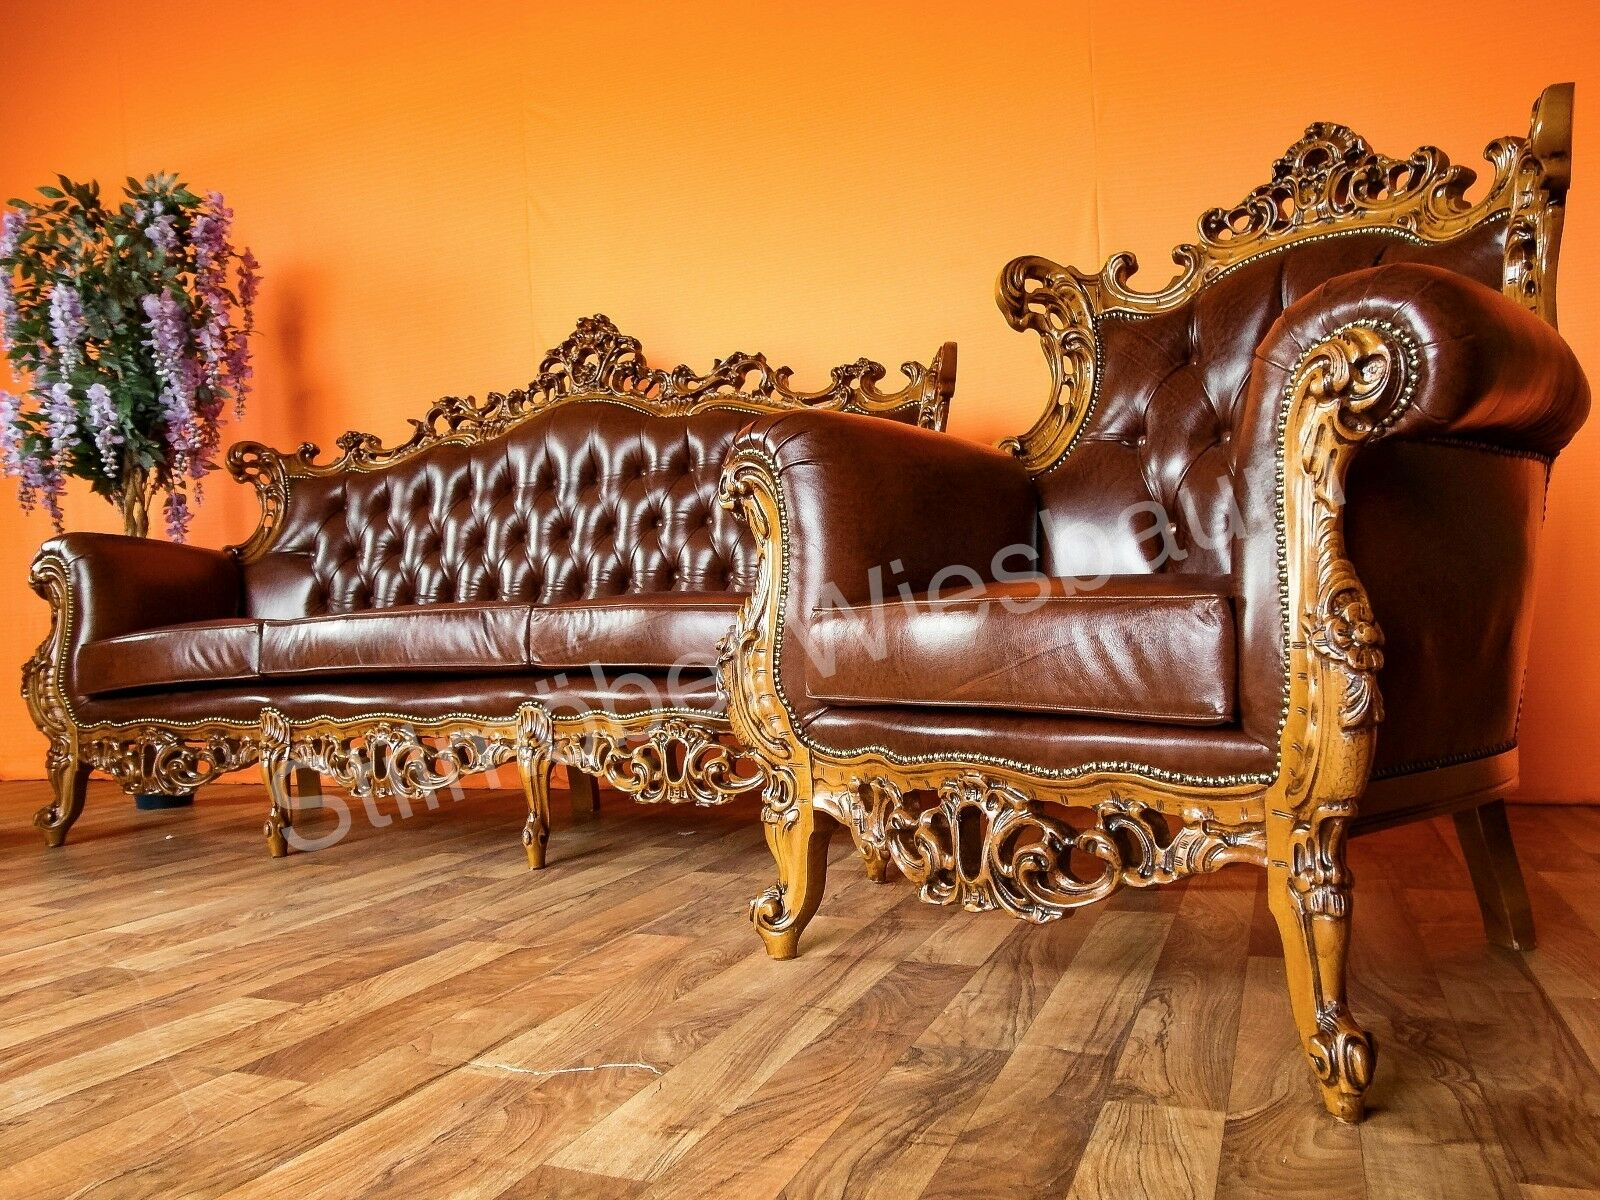 ital barock chesterfield couchgarnitur sofa mit 2 sesseln echtleder eur. Black Bedroom Furniture Sets. Home Design Ideas